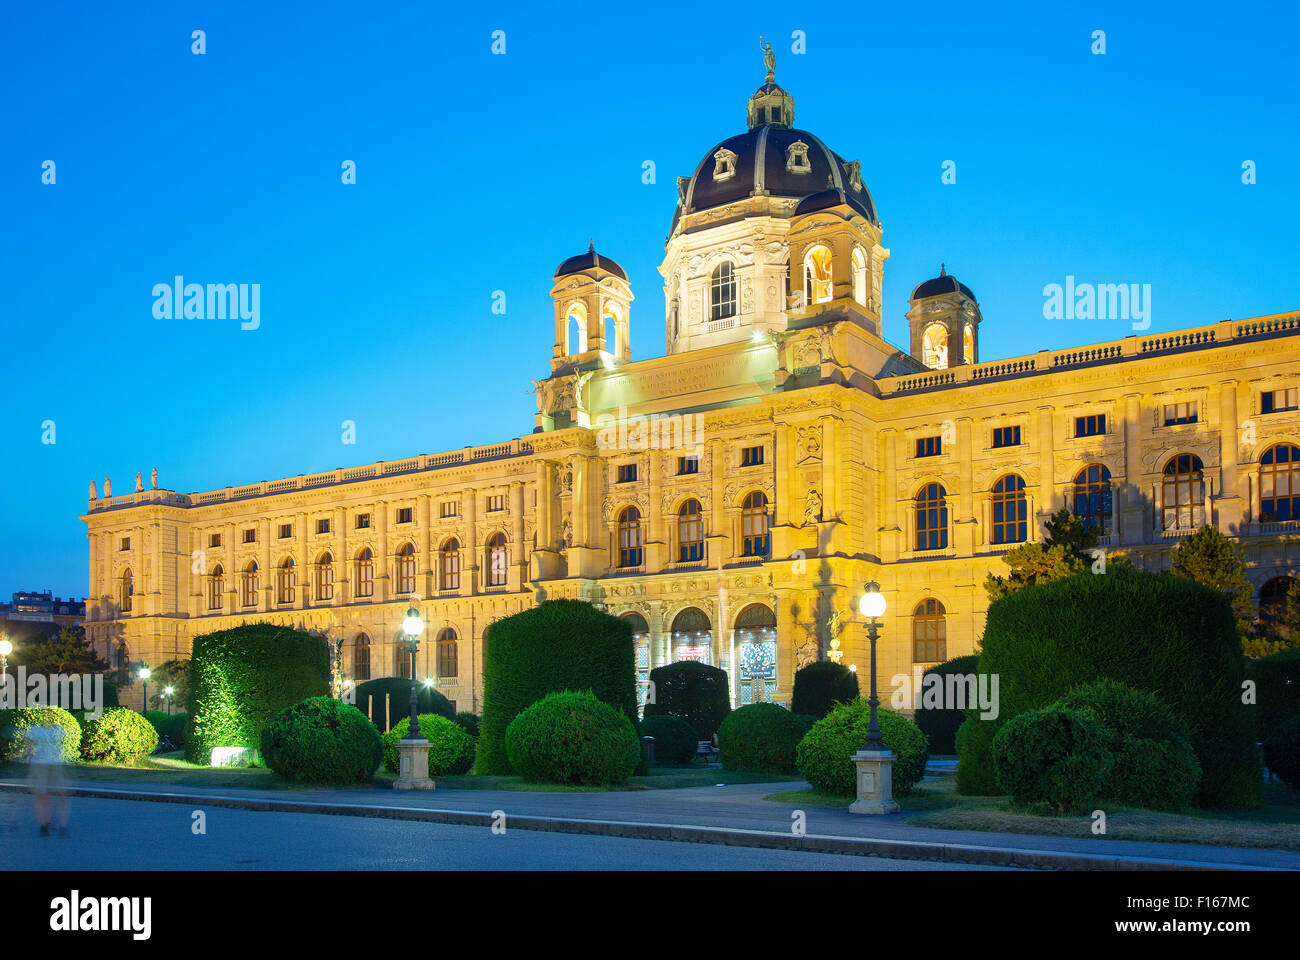 Austria, Vienna, view of Natural History Museum, - Stock Image